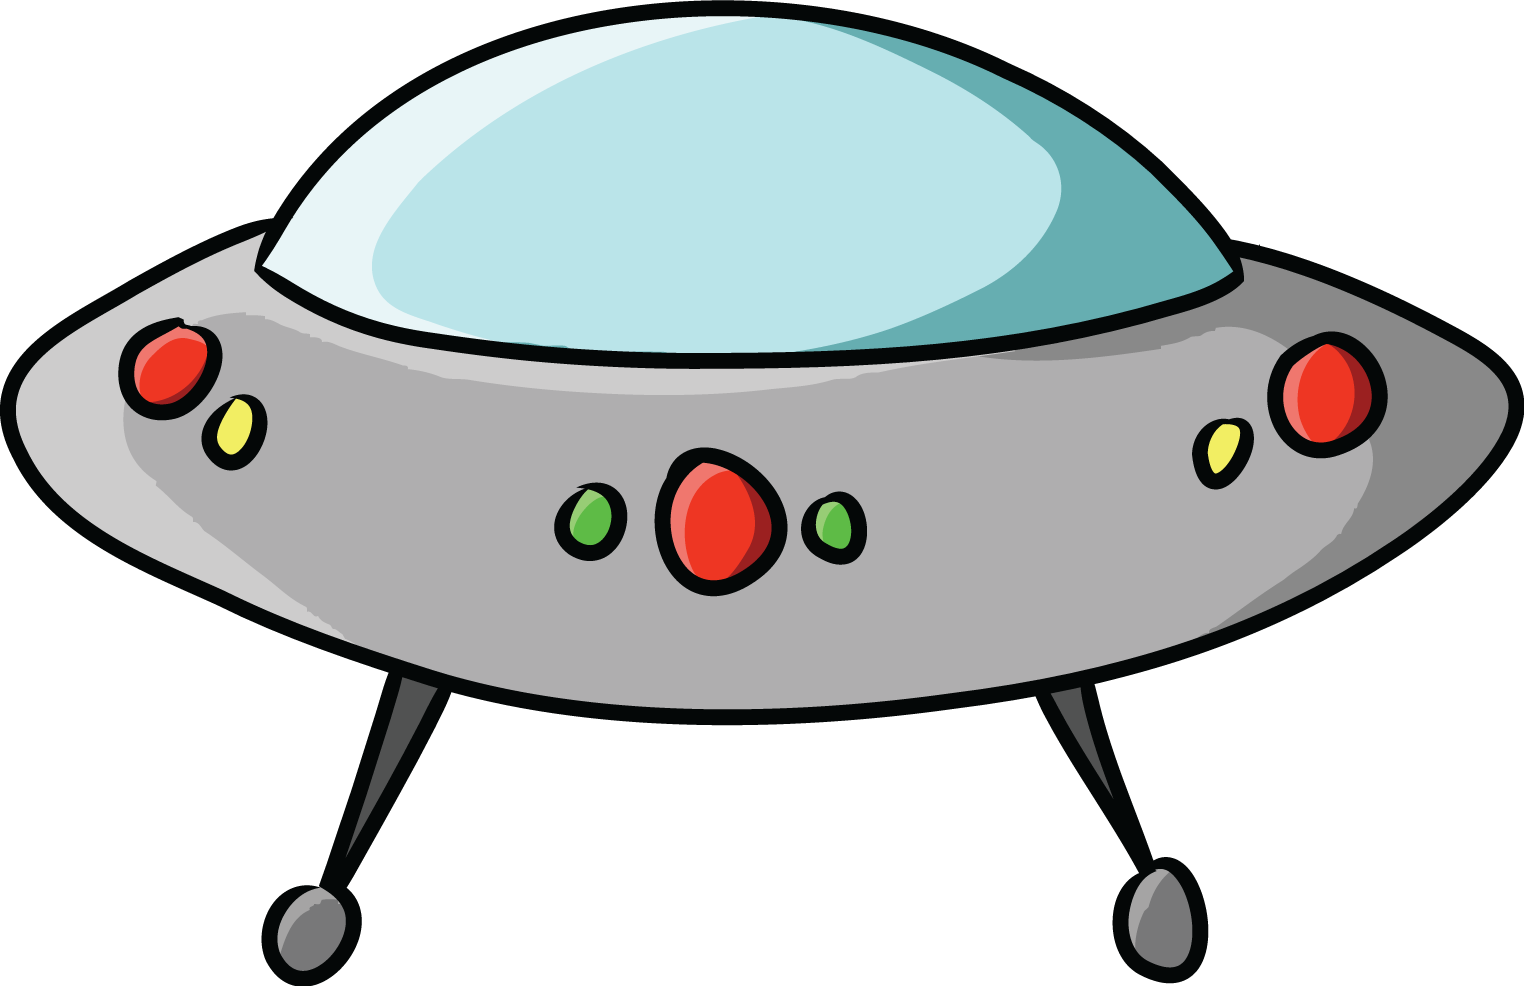 Flying saucer pictures clipart jpg freeuse stock Free Flying Saucer Clipart, Download Free Clip Art, Free Clip Art on ... jpg freeuse stock